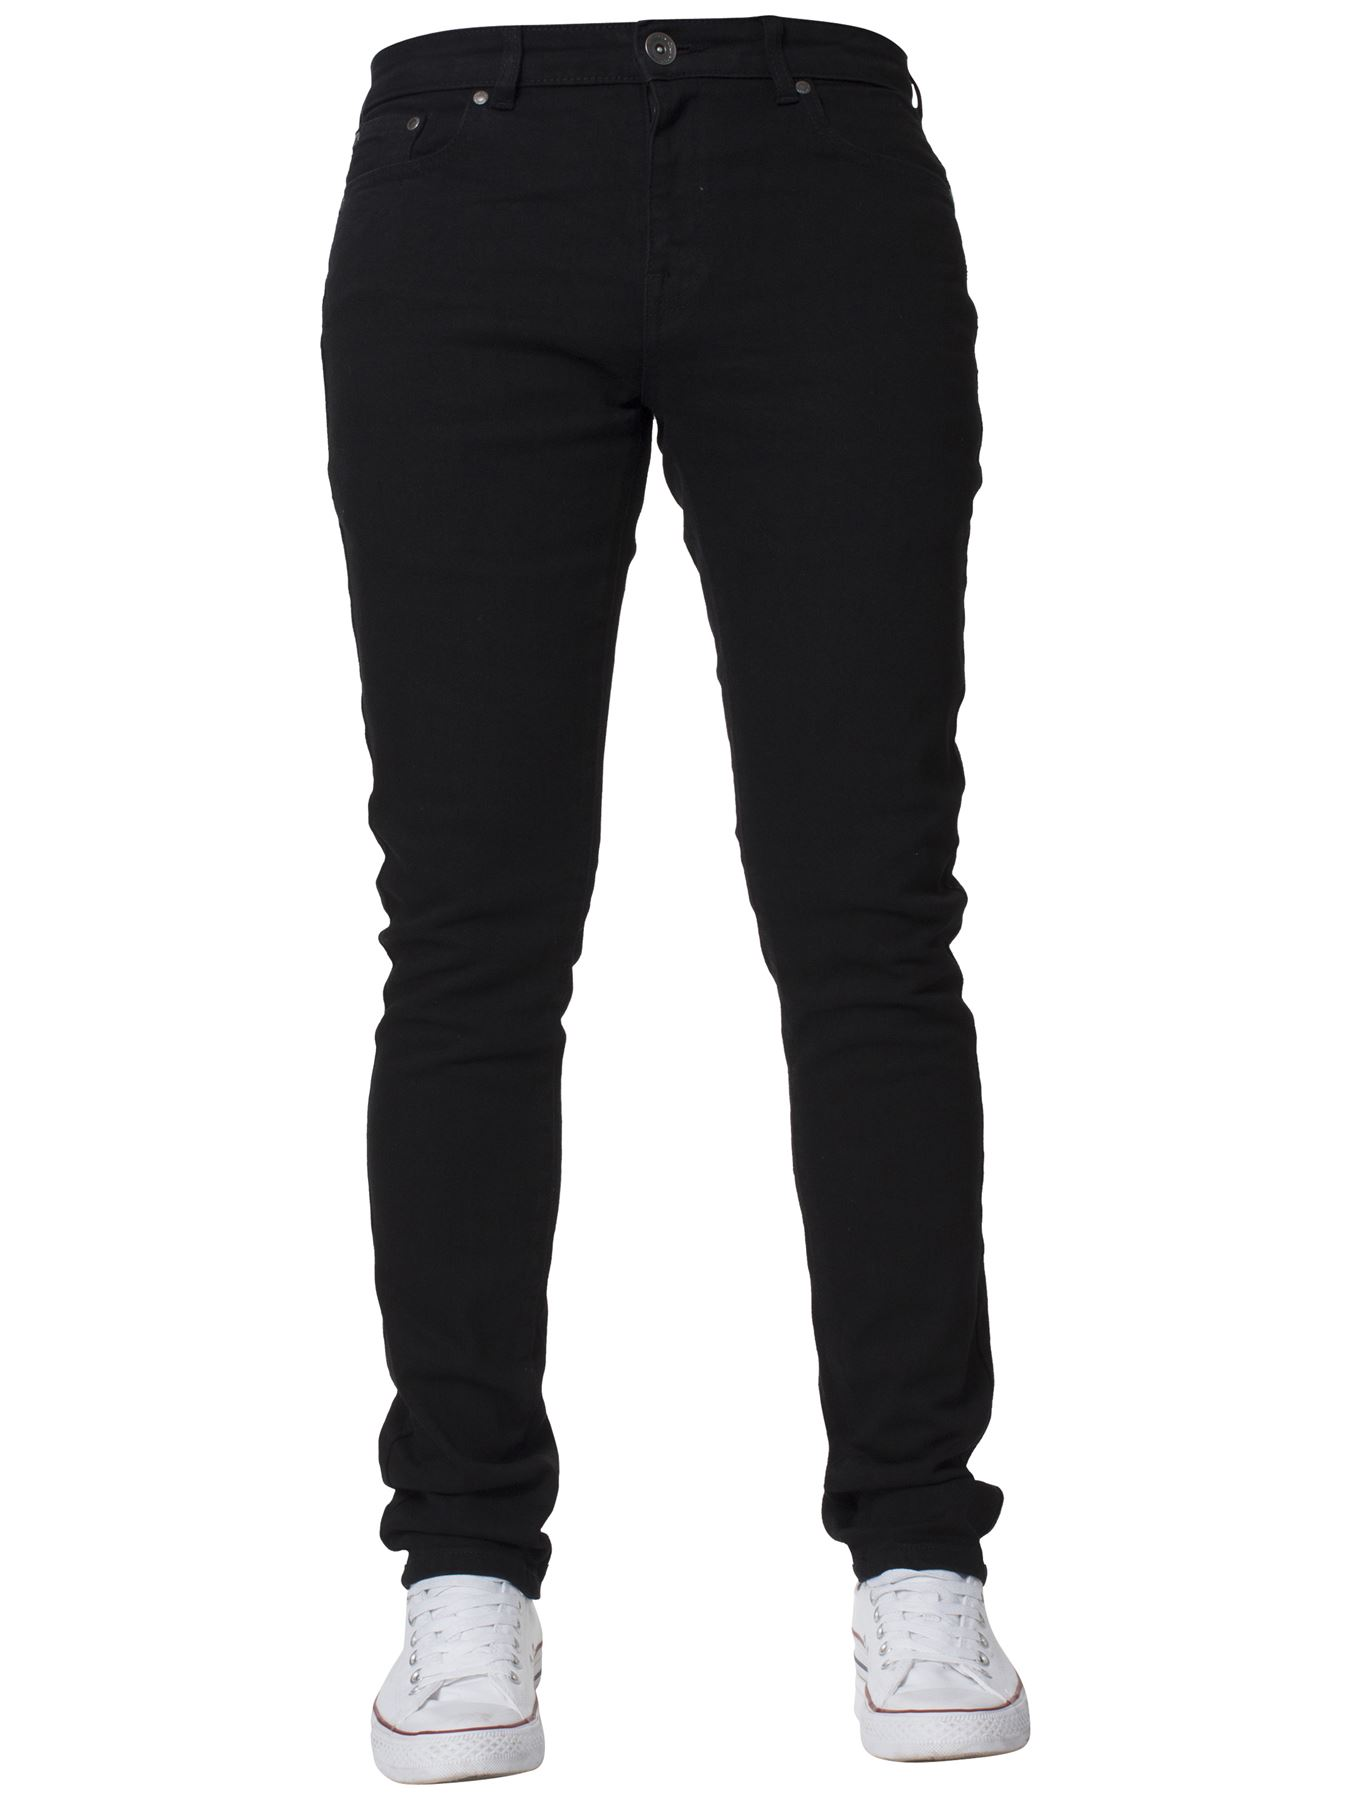 Kruze-Mens-Skinny-Stretch-Flex-Denim-Jeans-Slim-Fit-Trouser-Pants-Big-King-Sizes thumbnail 4